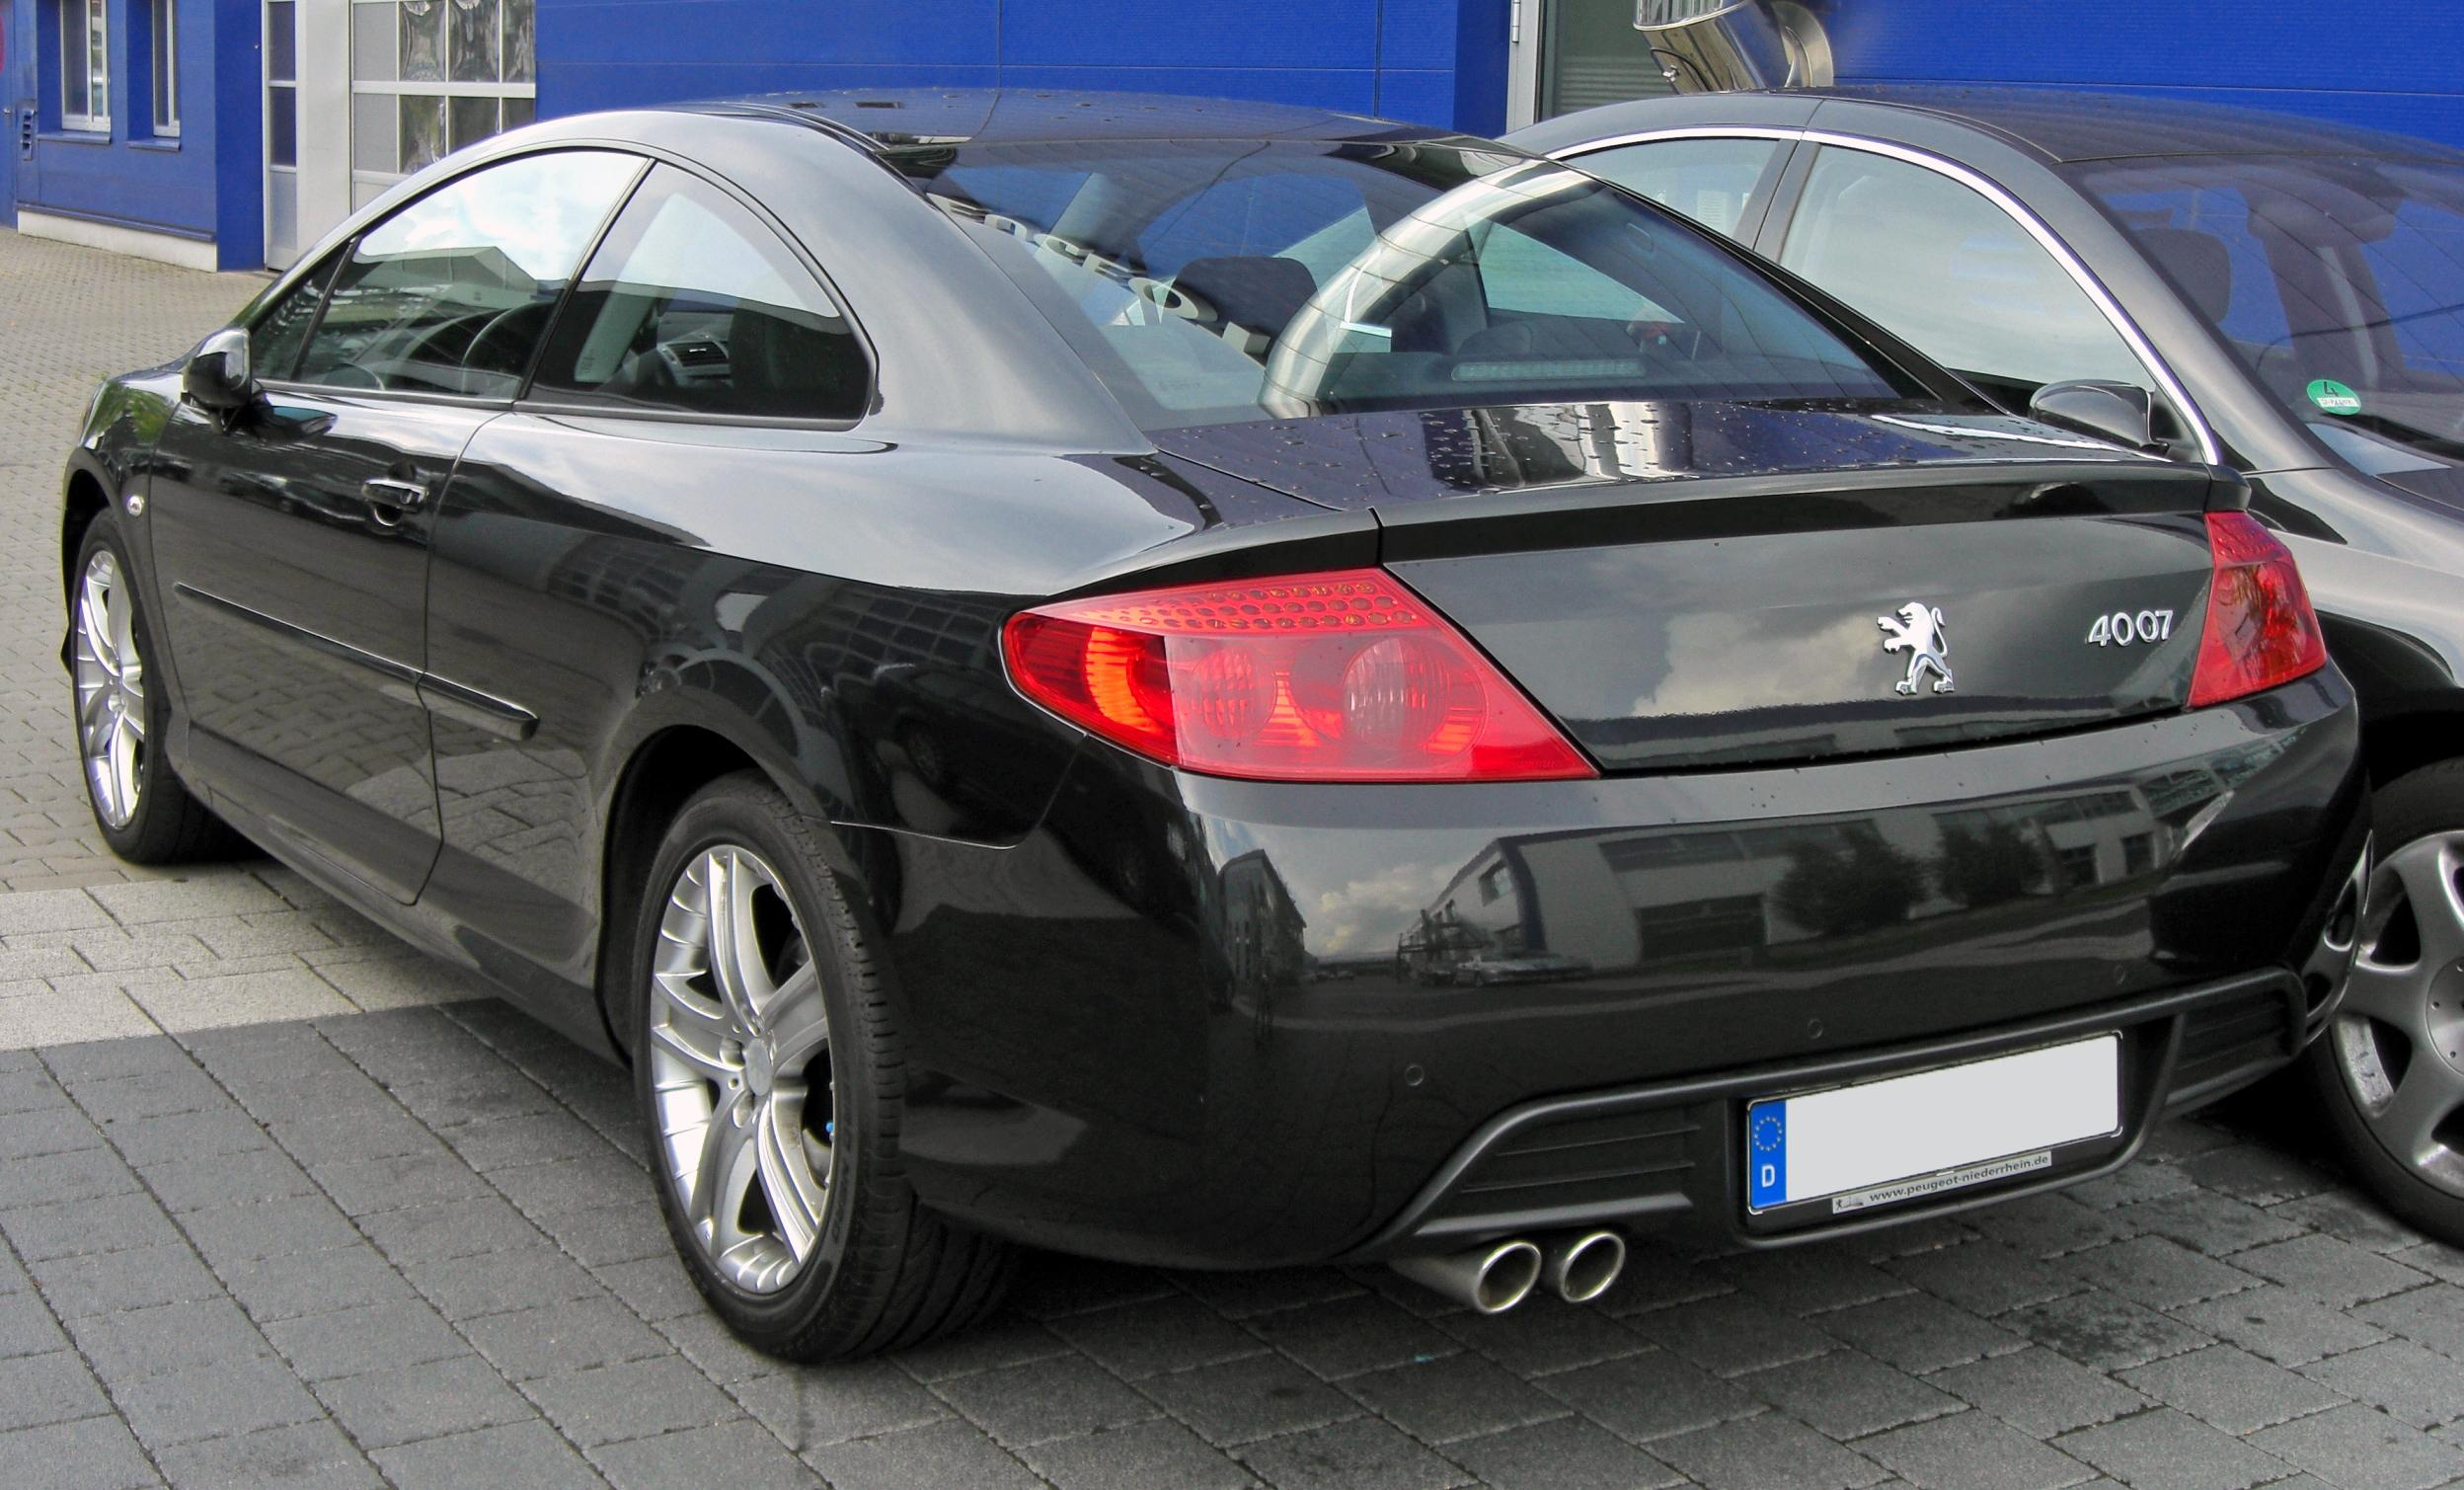 File:Peugeot 407 Coupé 20090706 rear.JPG